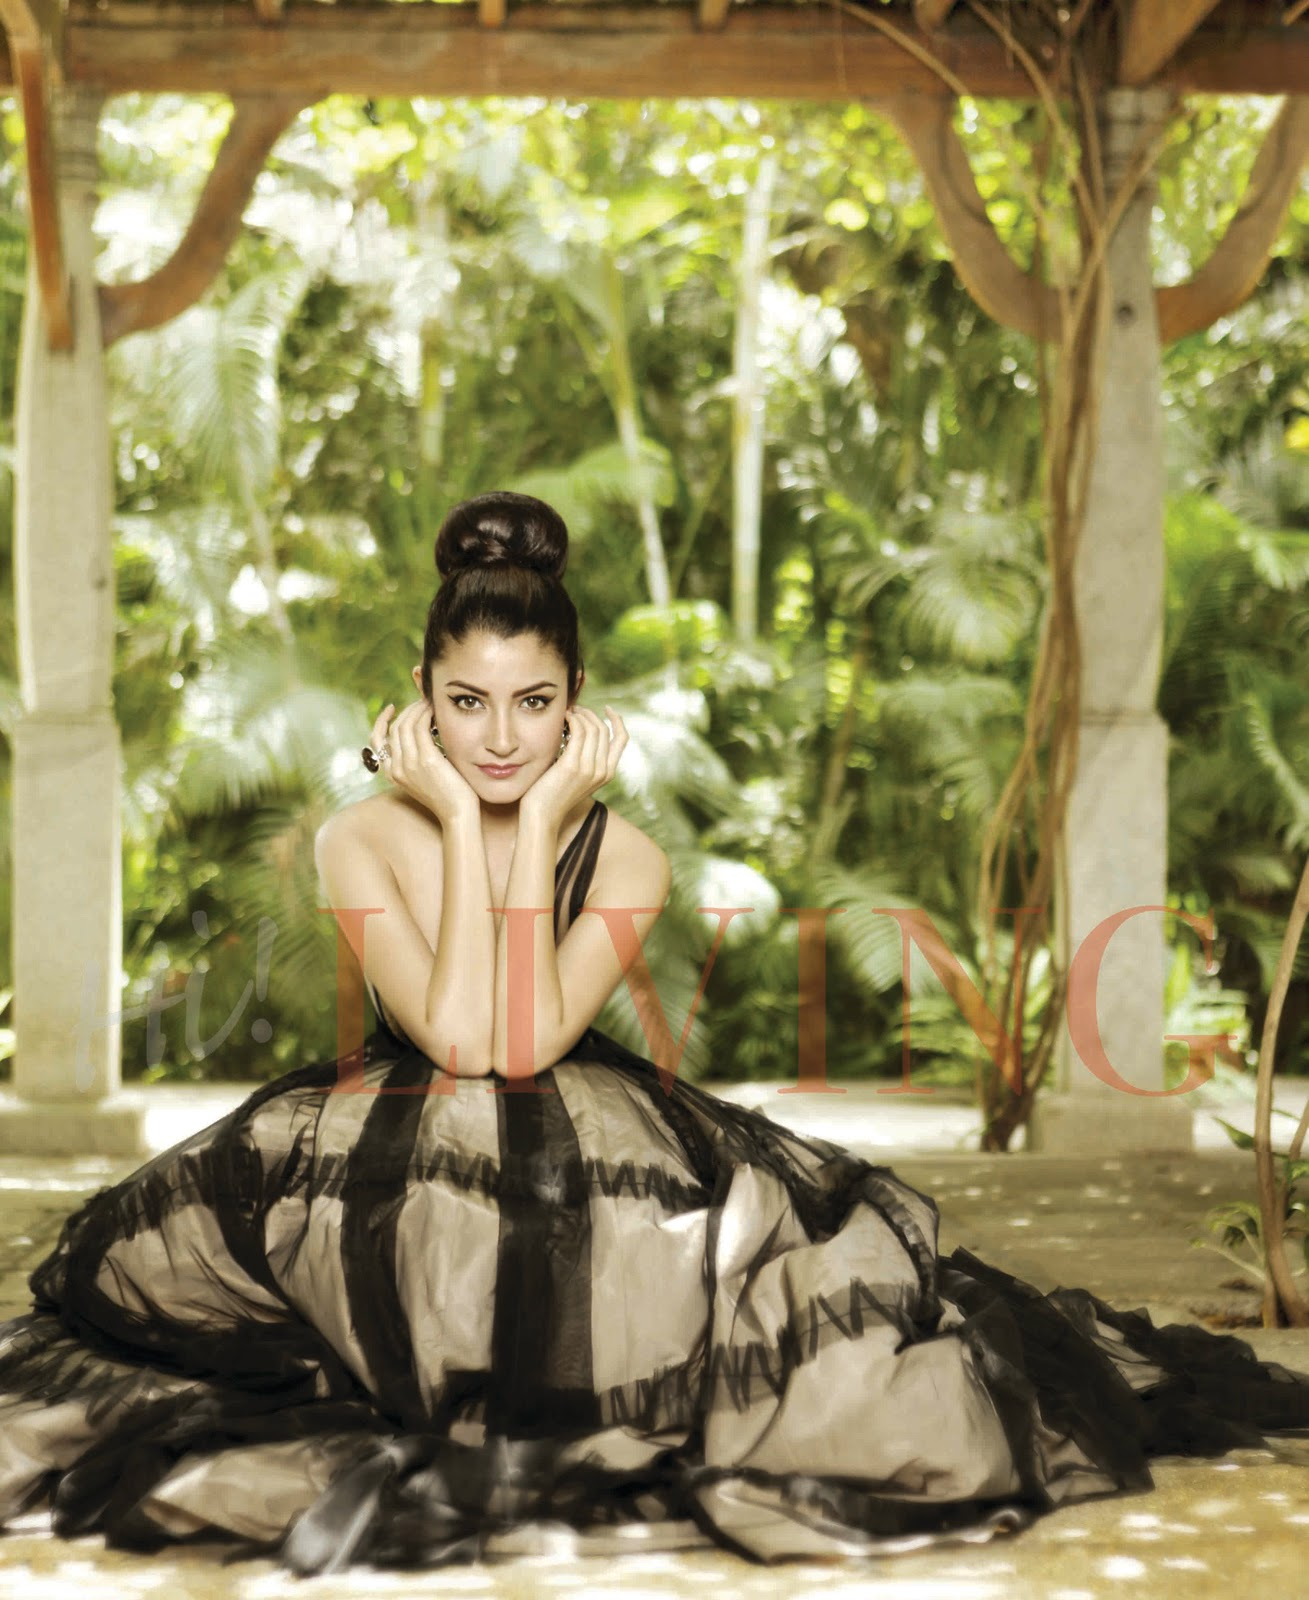 Anushka-Sharma-For-Hi-LIVING-Magazine-Cover-Stills-5